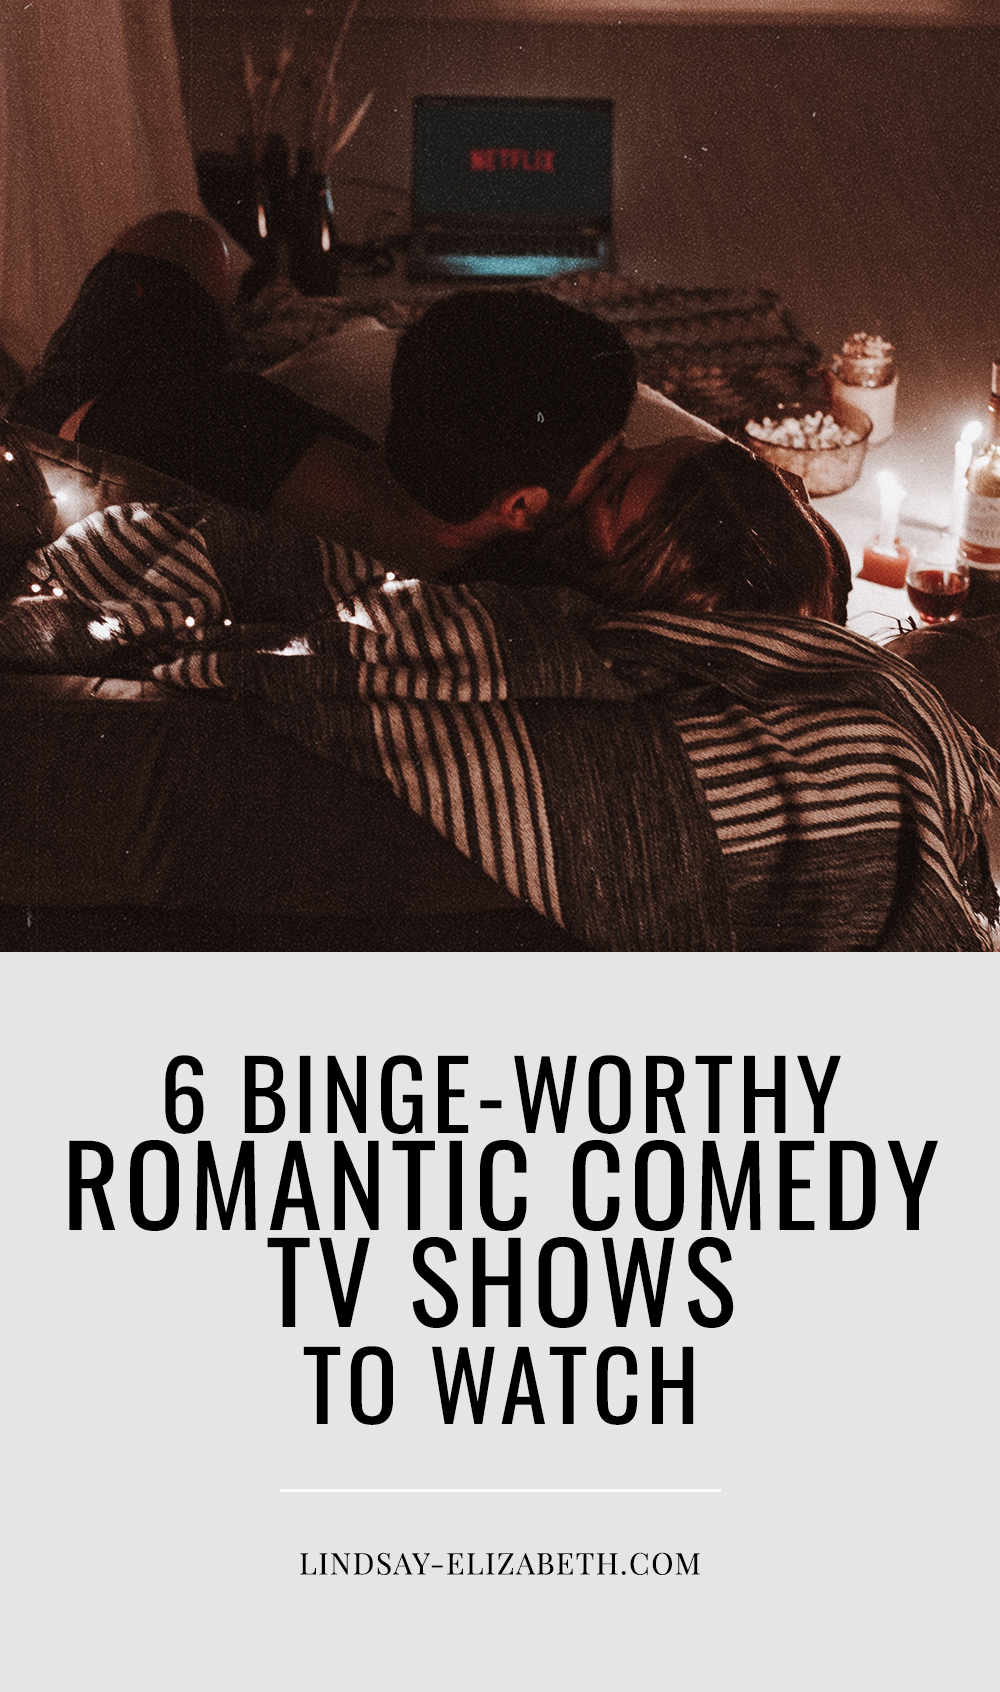 Looking for a good, satisfying rom-com binge-watch? Here are six romantic comedy TV shows for you to check out on Netflix, Hulu, and other platforms that offer you the perfect amount of fun, romance, escapism, and heart-centered stories. #romanticcomedies #romcoms #netflix #bingewatch